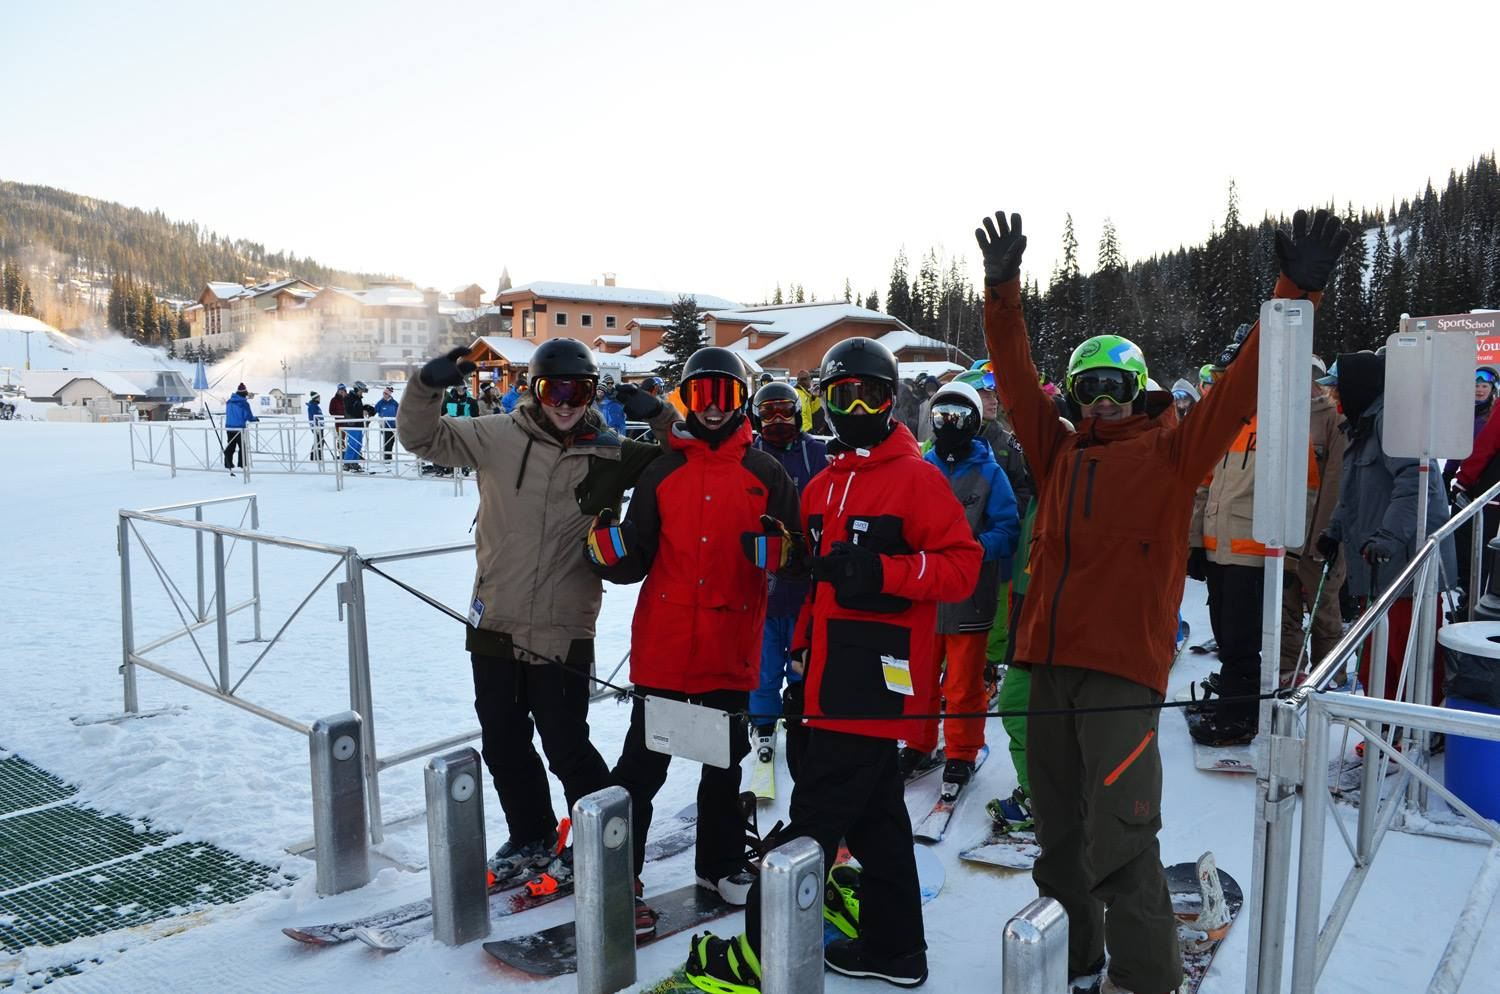 BIG SMILES FOR A BIG OPENING: Bryn, Ty, Adam and Dom claimed first chair. - Photo by TSP